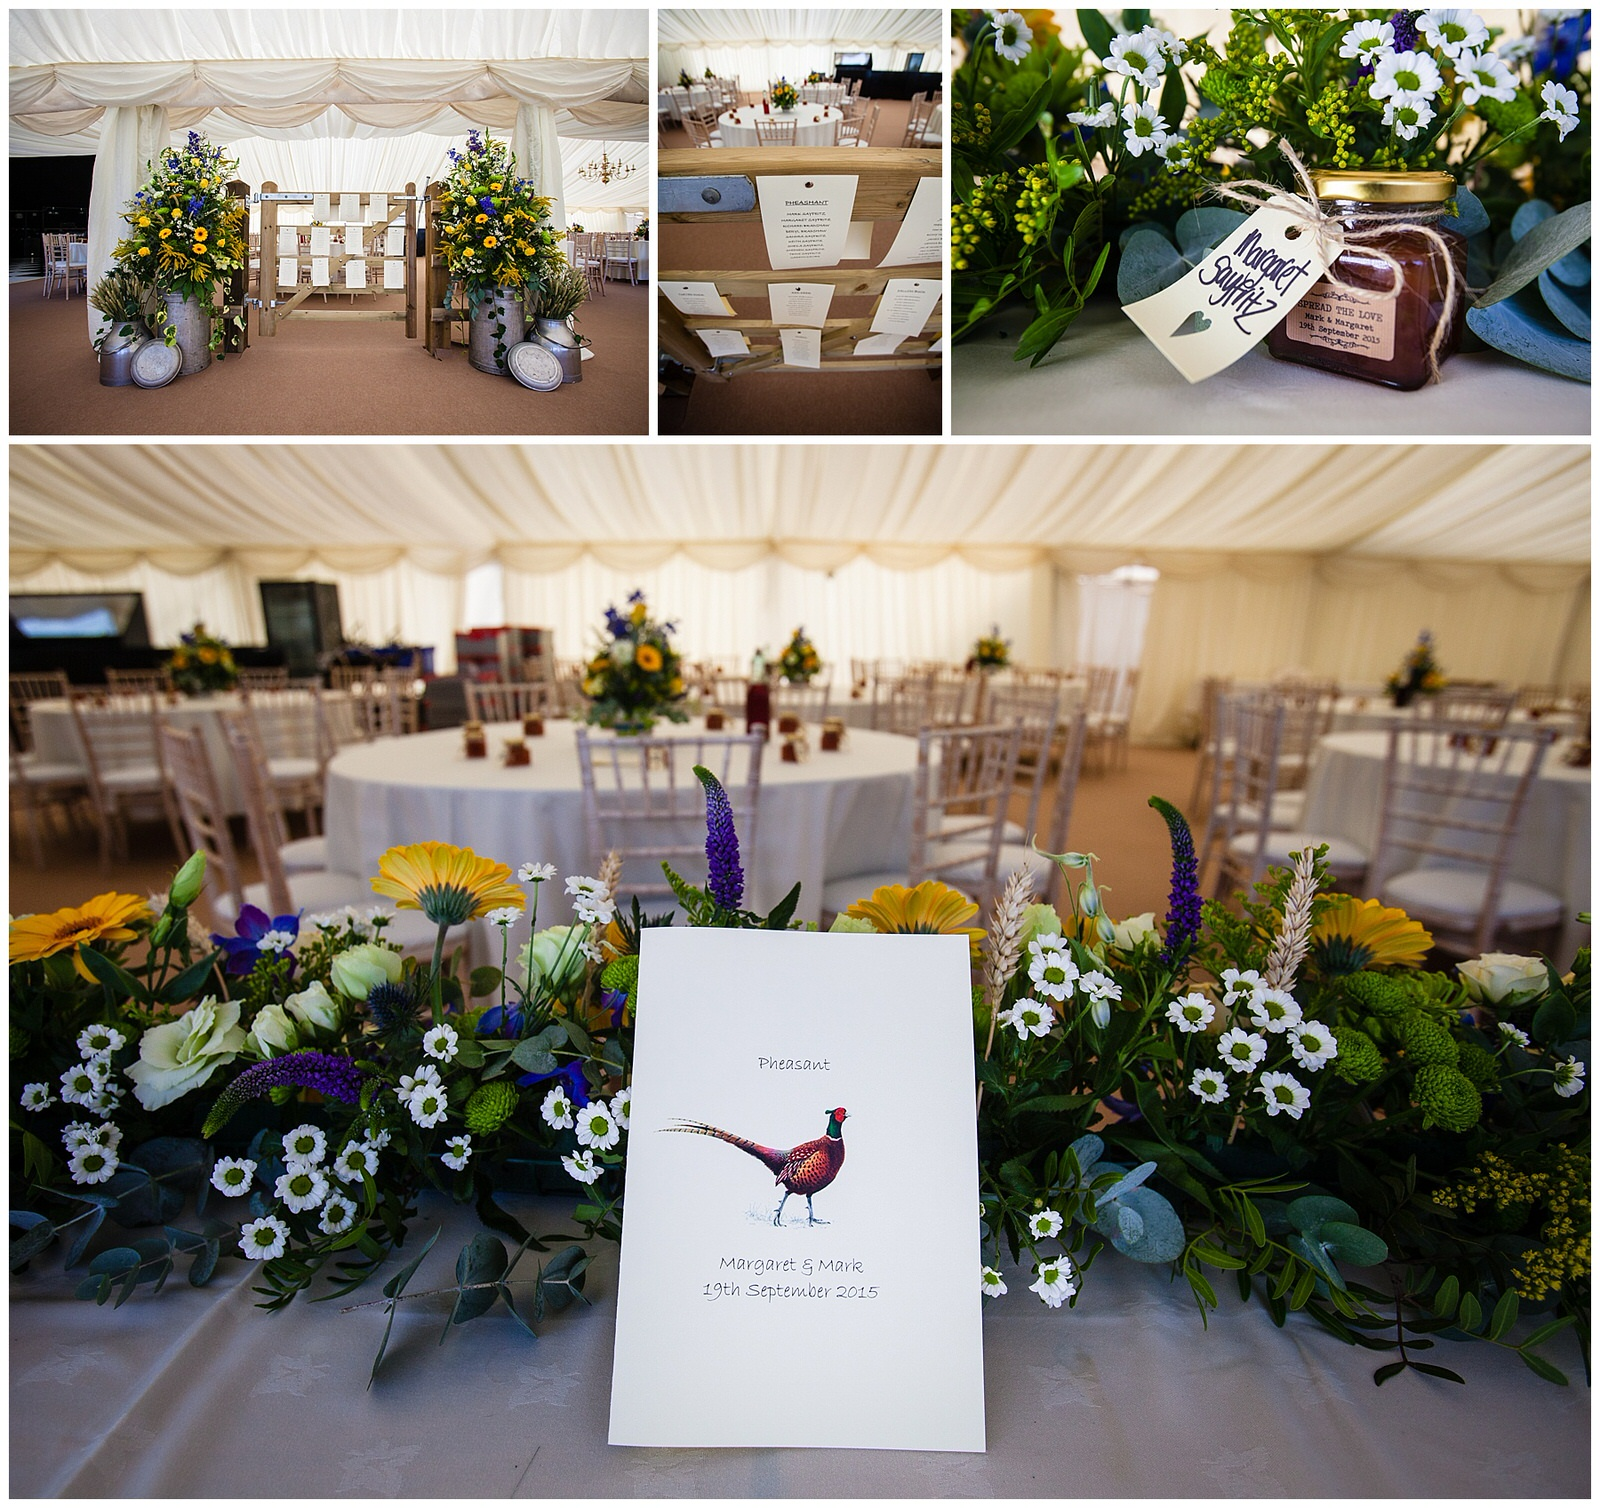 Homemade jam favours and detail shots of September marquee wedding - Charlotte Giddings Photography